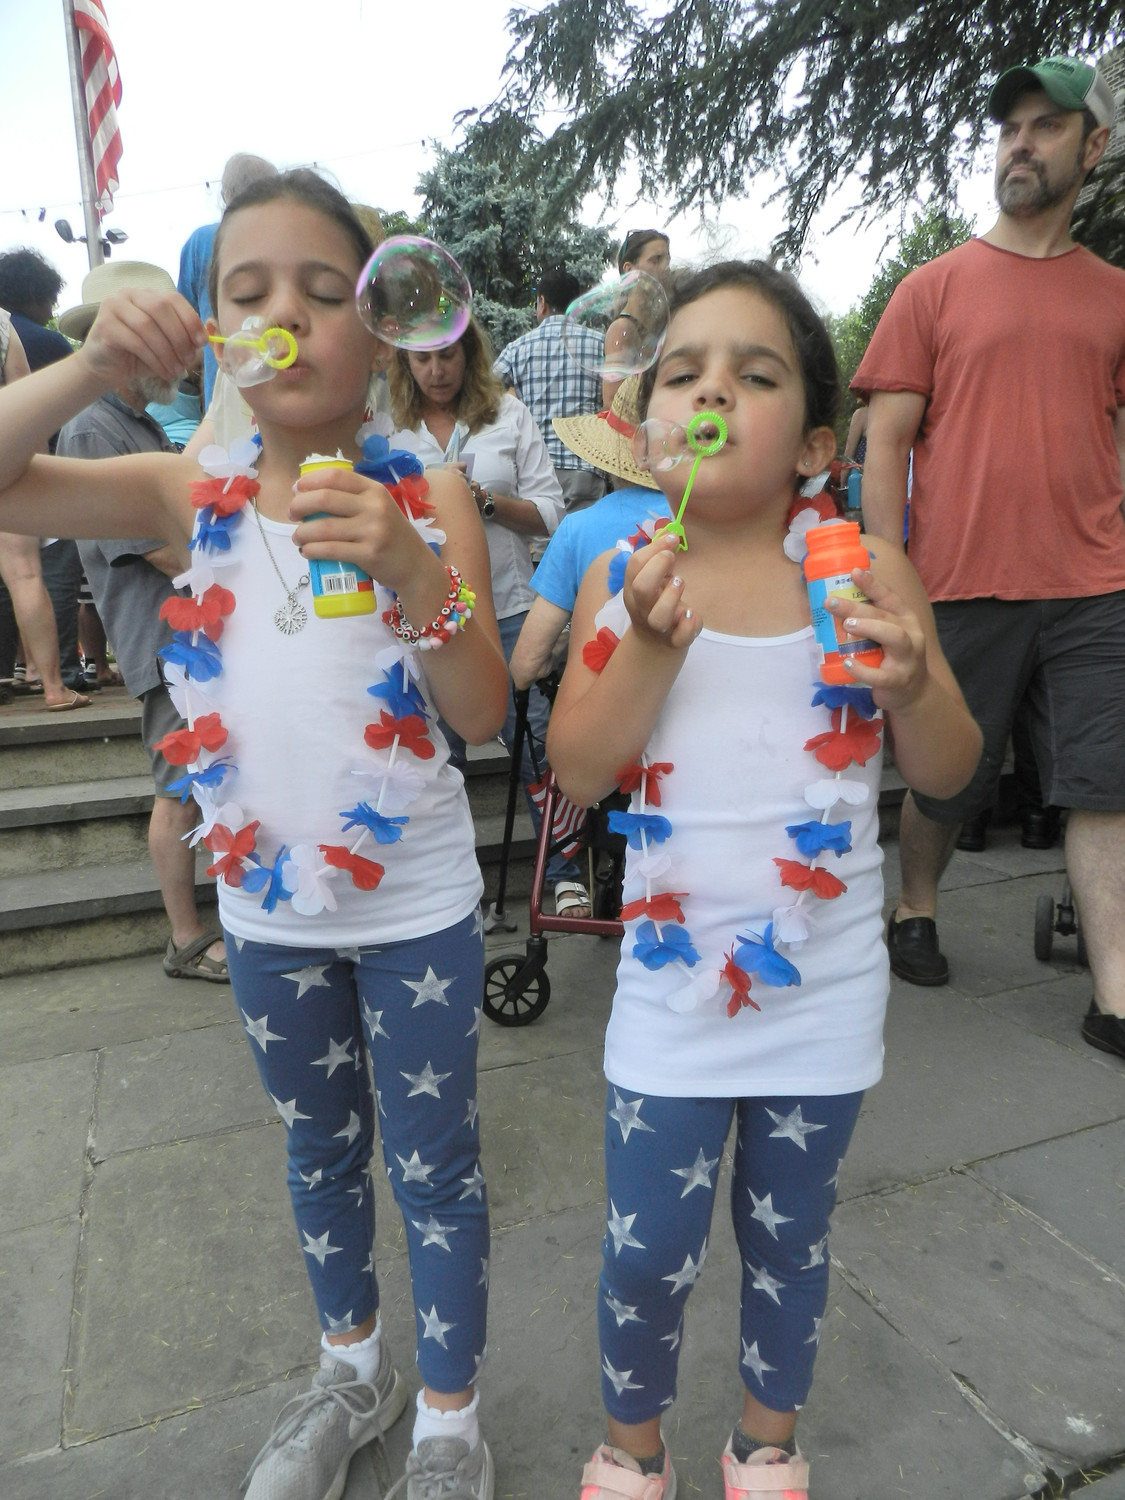 Sisters Gwyneth, 7, and Margot, 6, had fun with bubbles.